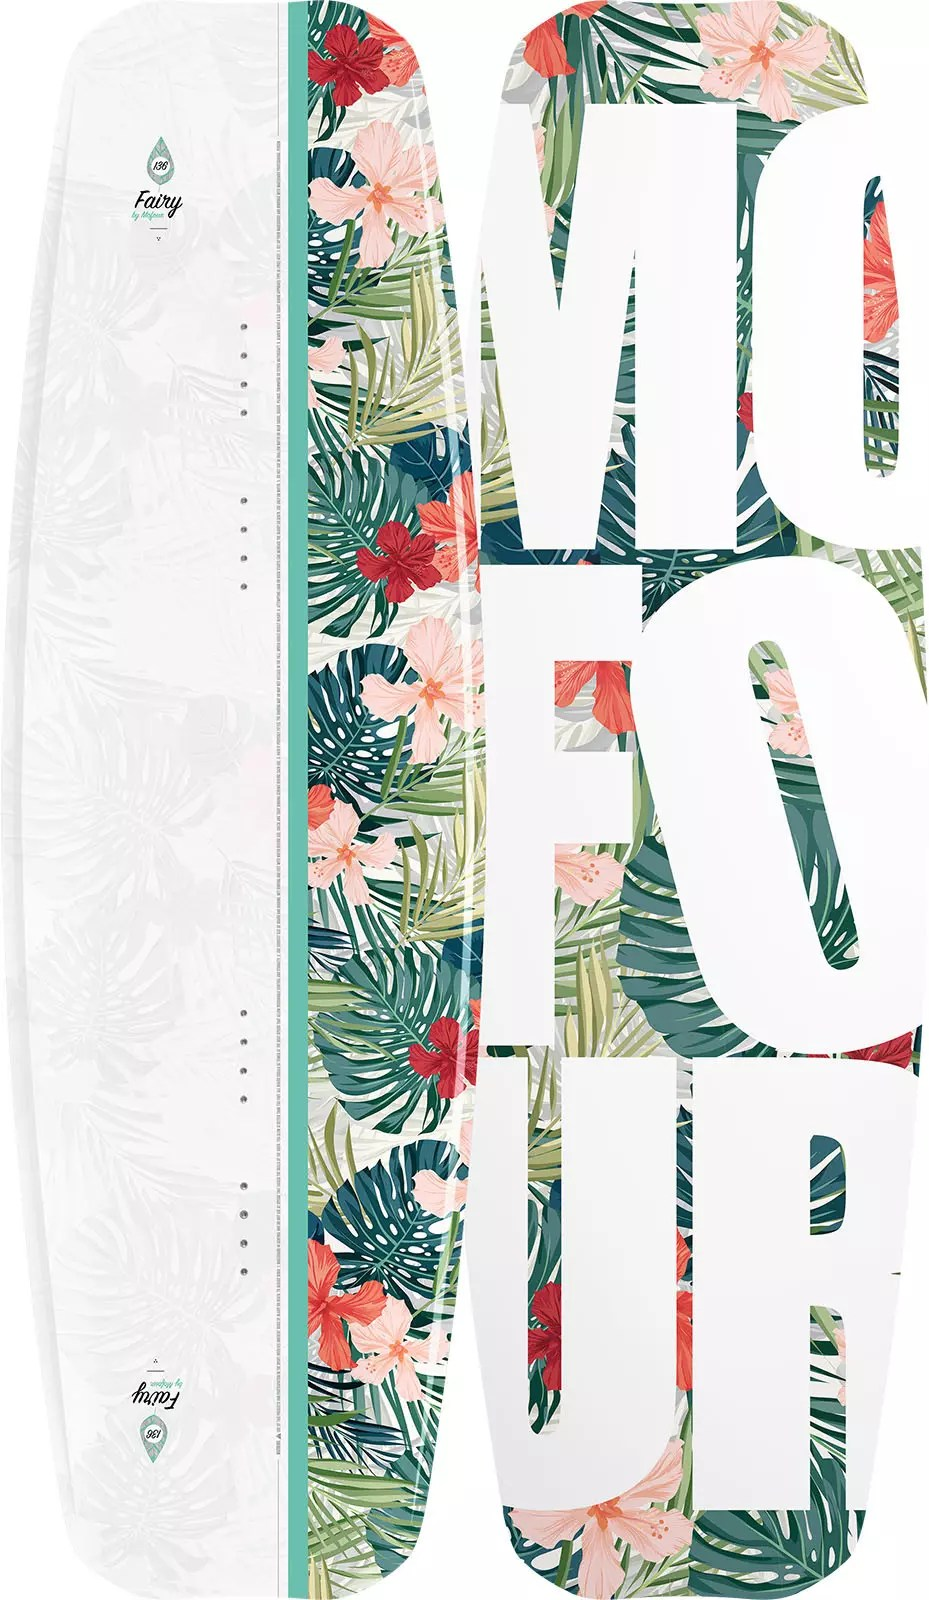 mofour wakeboards 2018 fairy